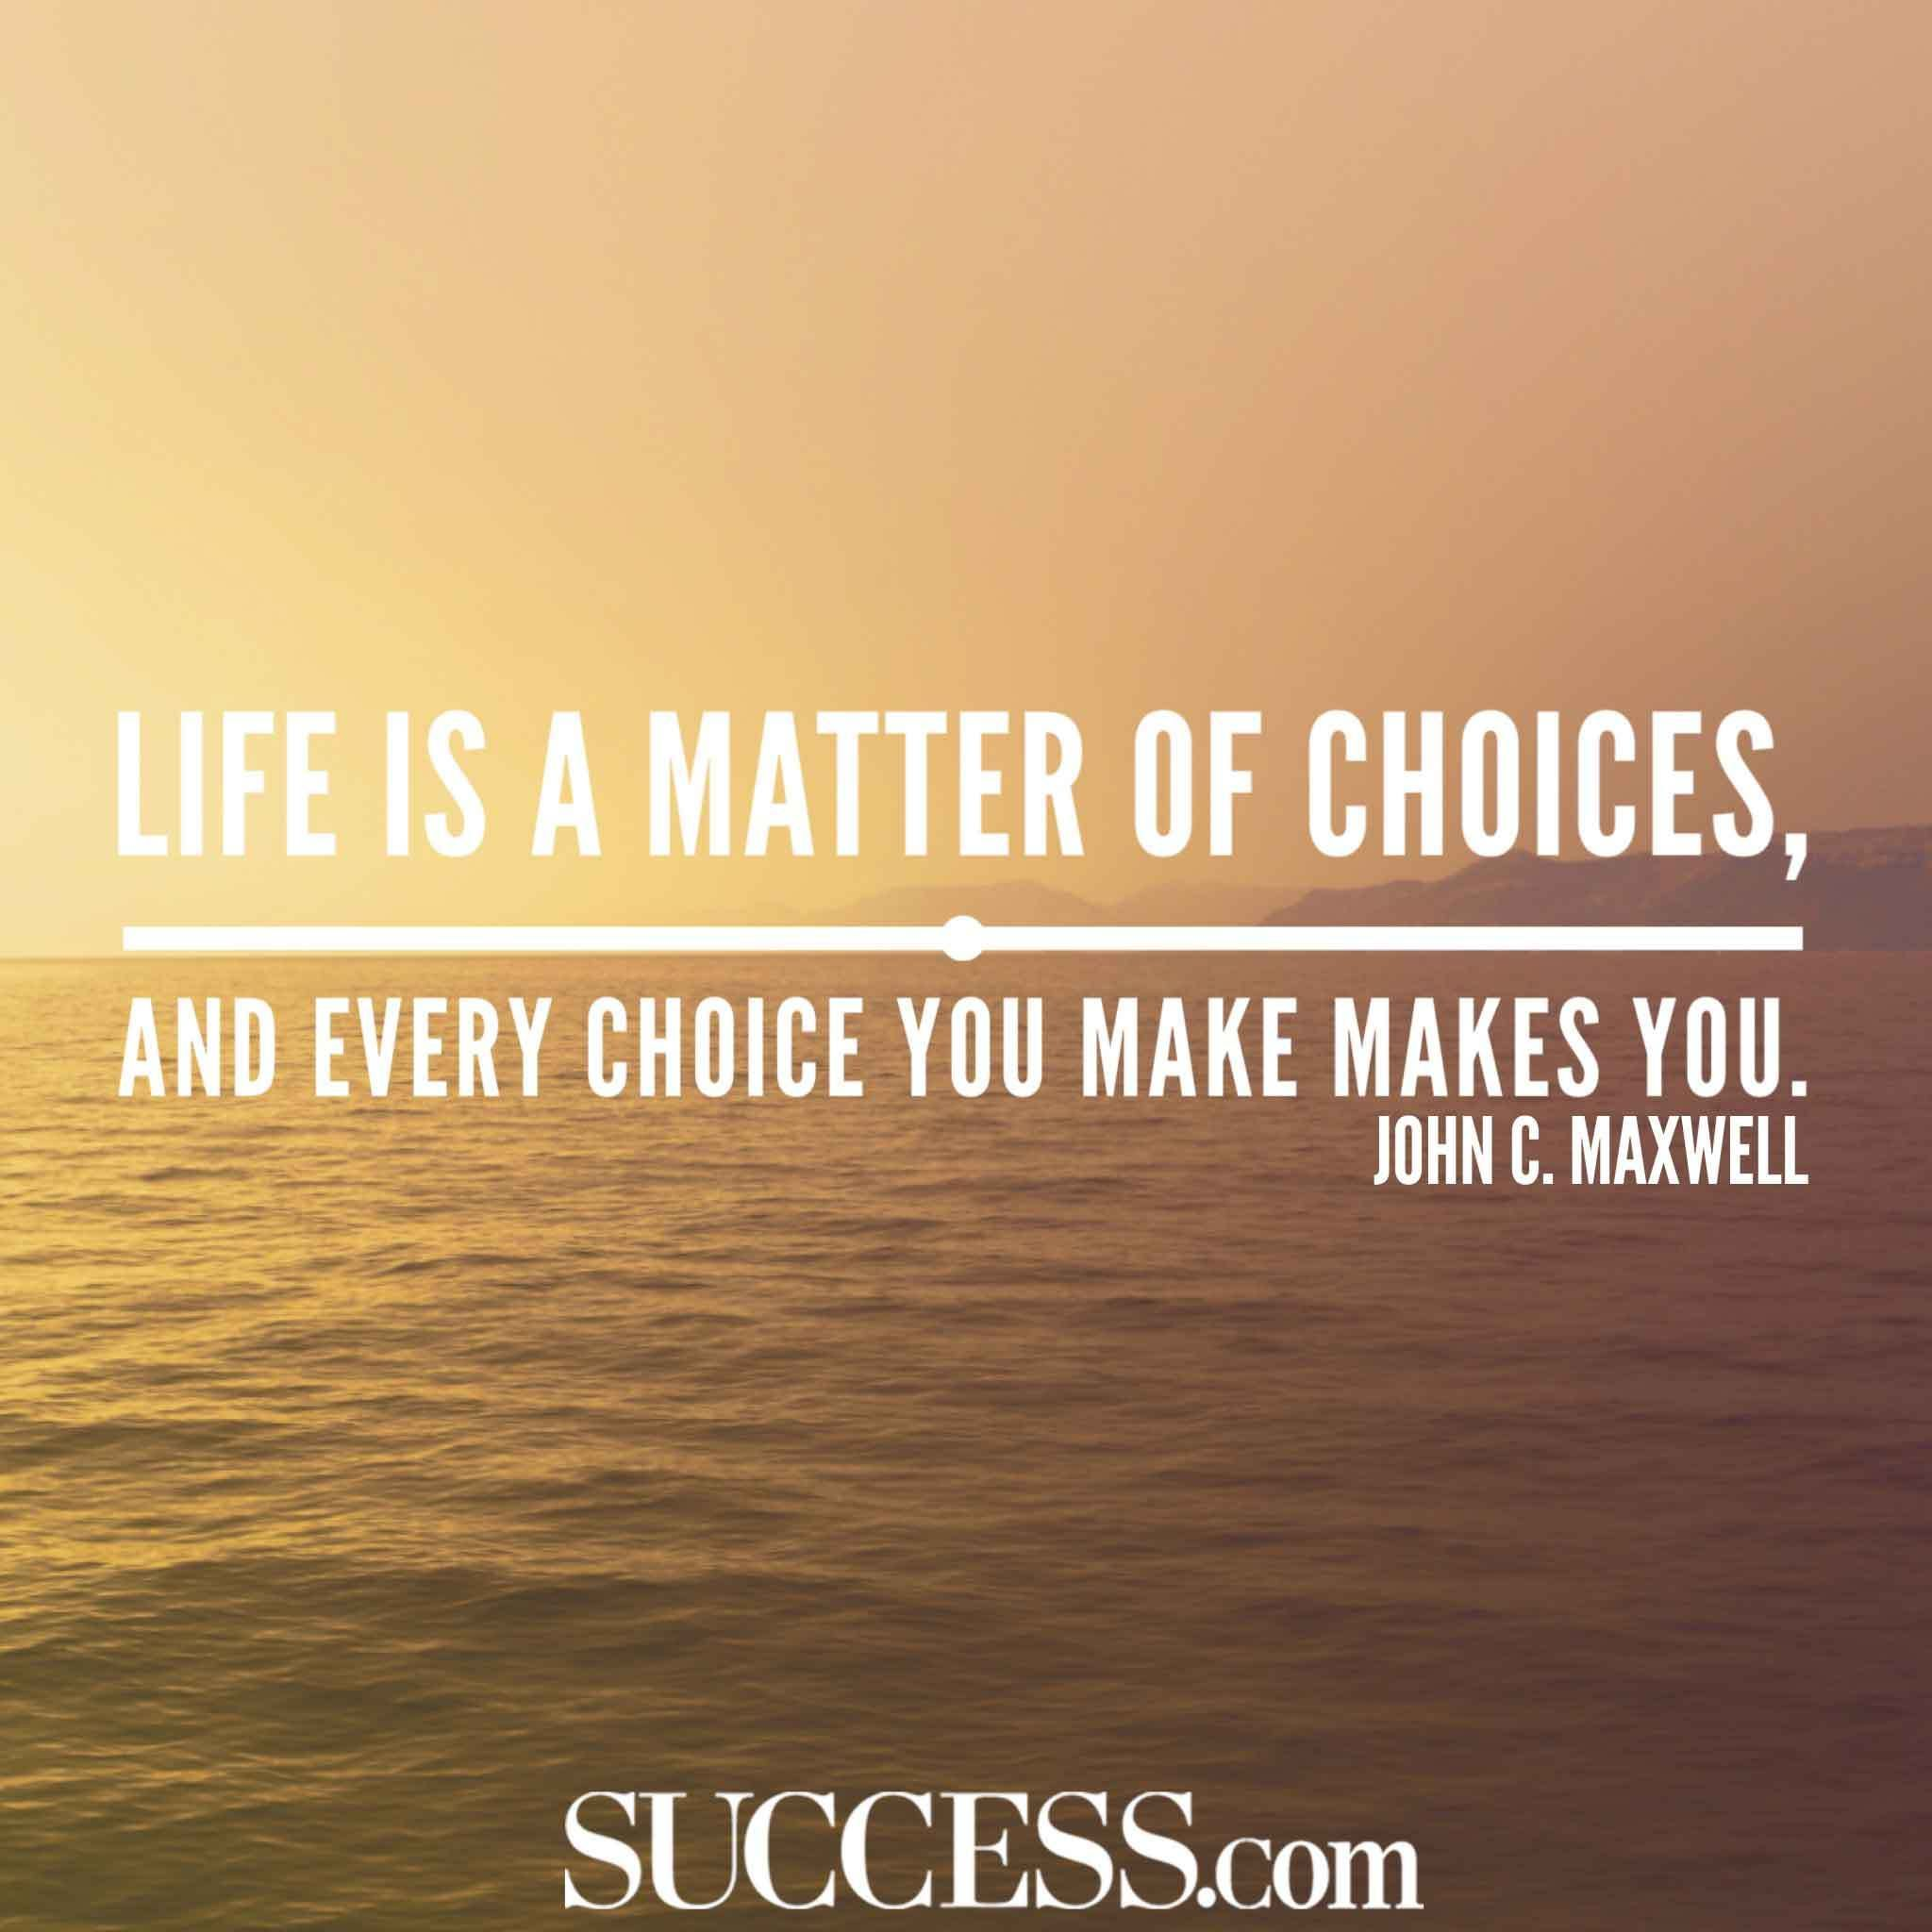 13 Quotes About Making Life Choices Life choices quotes